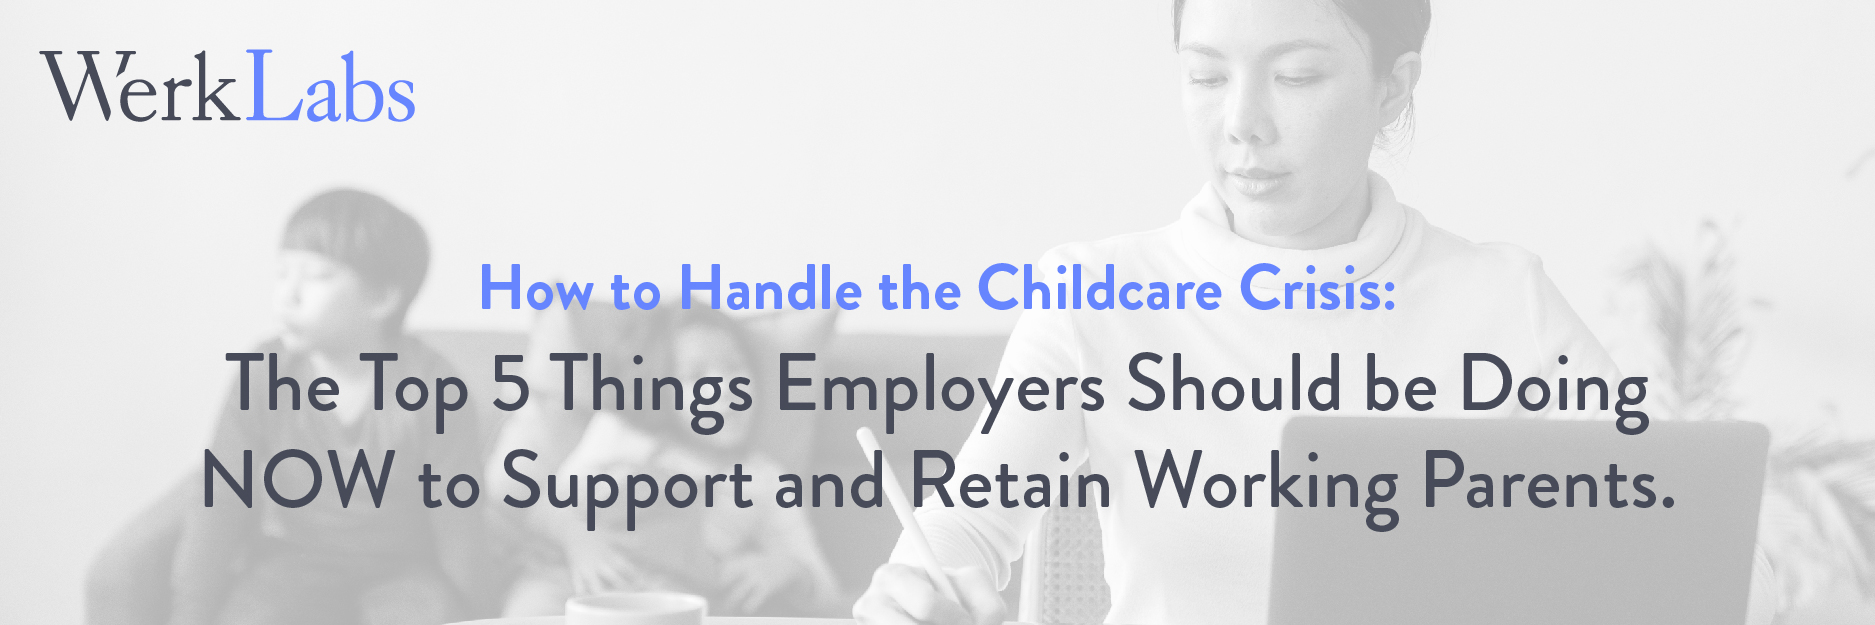 How to Handle the Childcare Crisis